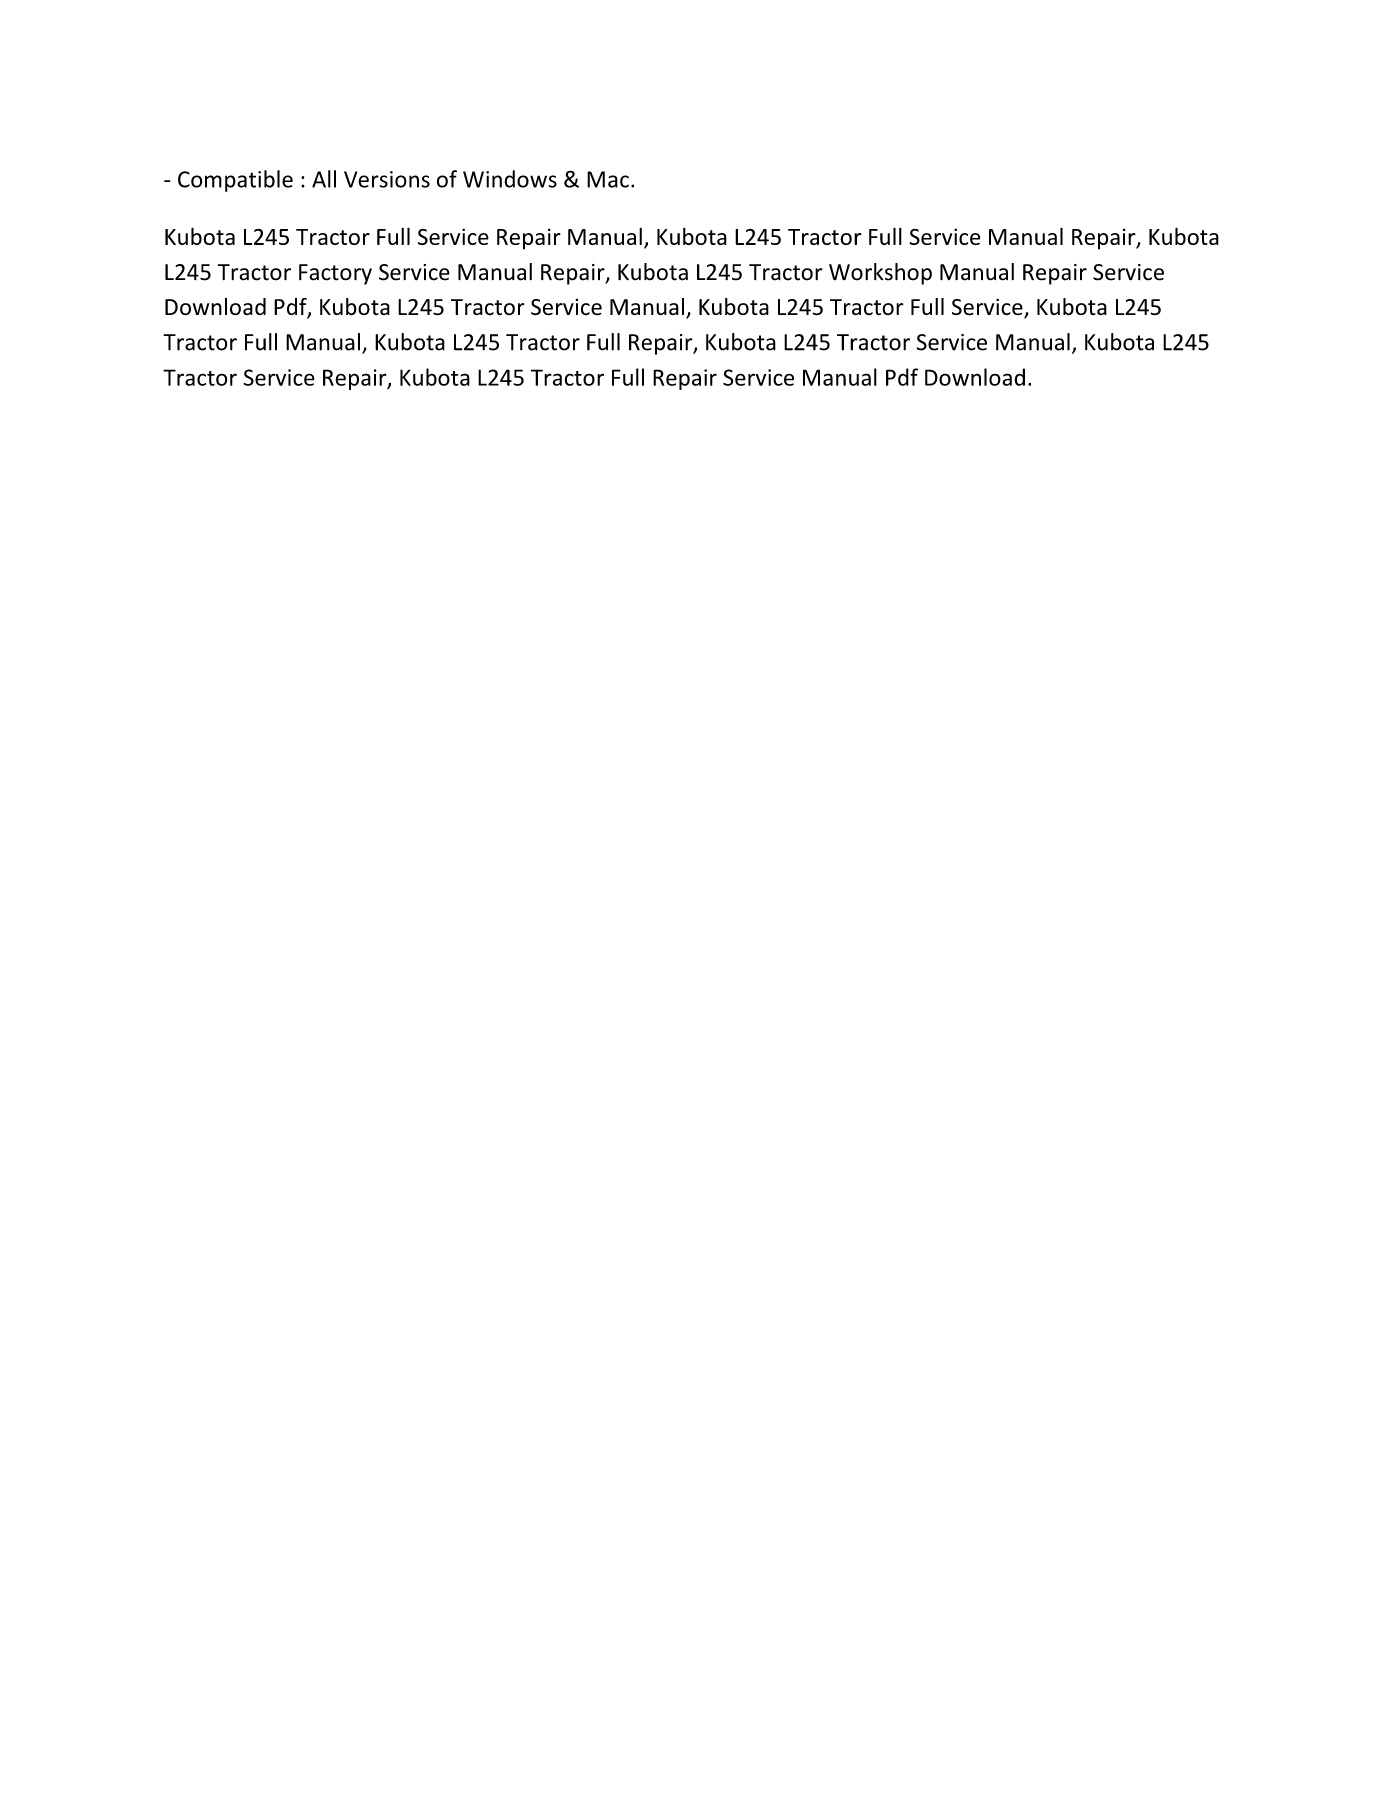 kubota l245 tractor full service manual repair pages 1 - 2 - text version |  anyflip